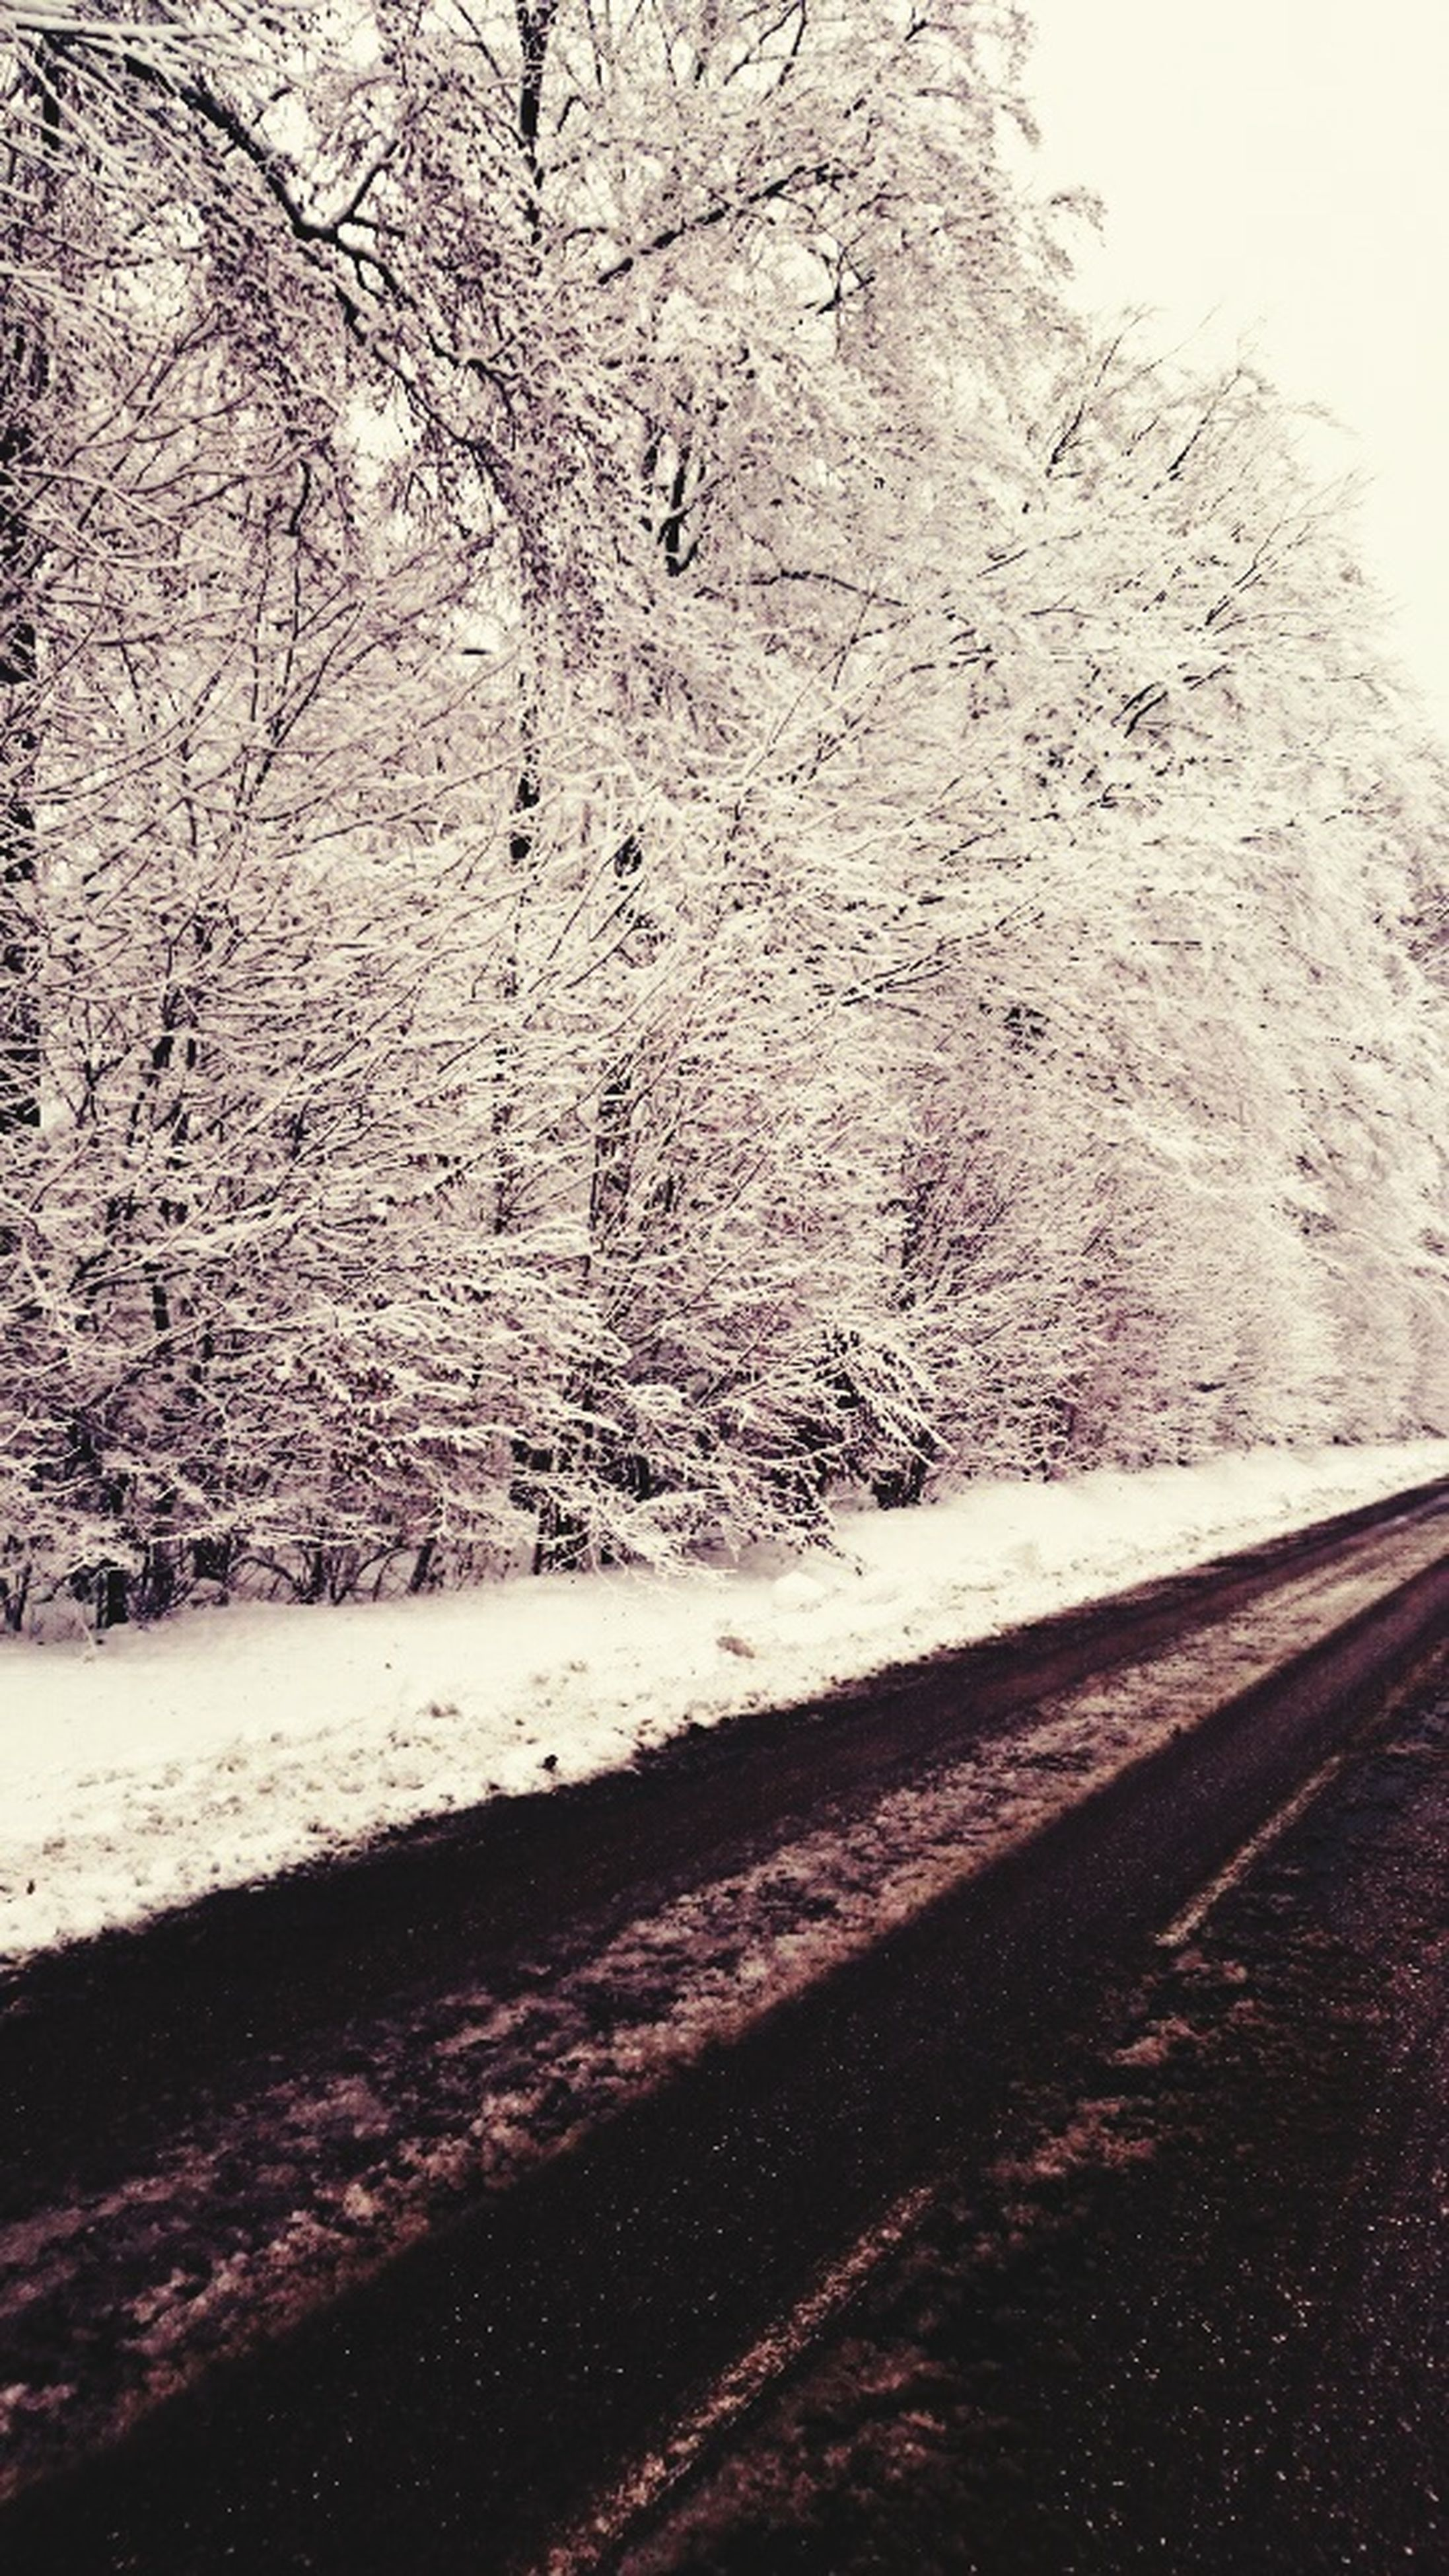 road, transportation, the way forward, road marking, street, snow, asphalt, winter, cold temperature, nature, day, diminishing perspective, outdoors, no people, season, weather, empty road, vanishing point, sky, tree